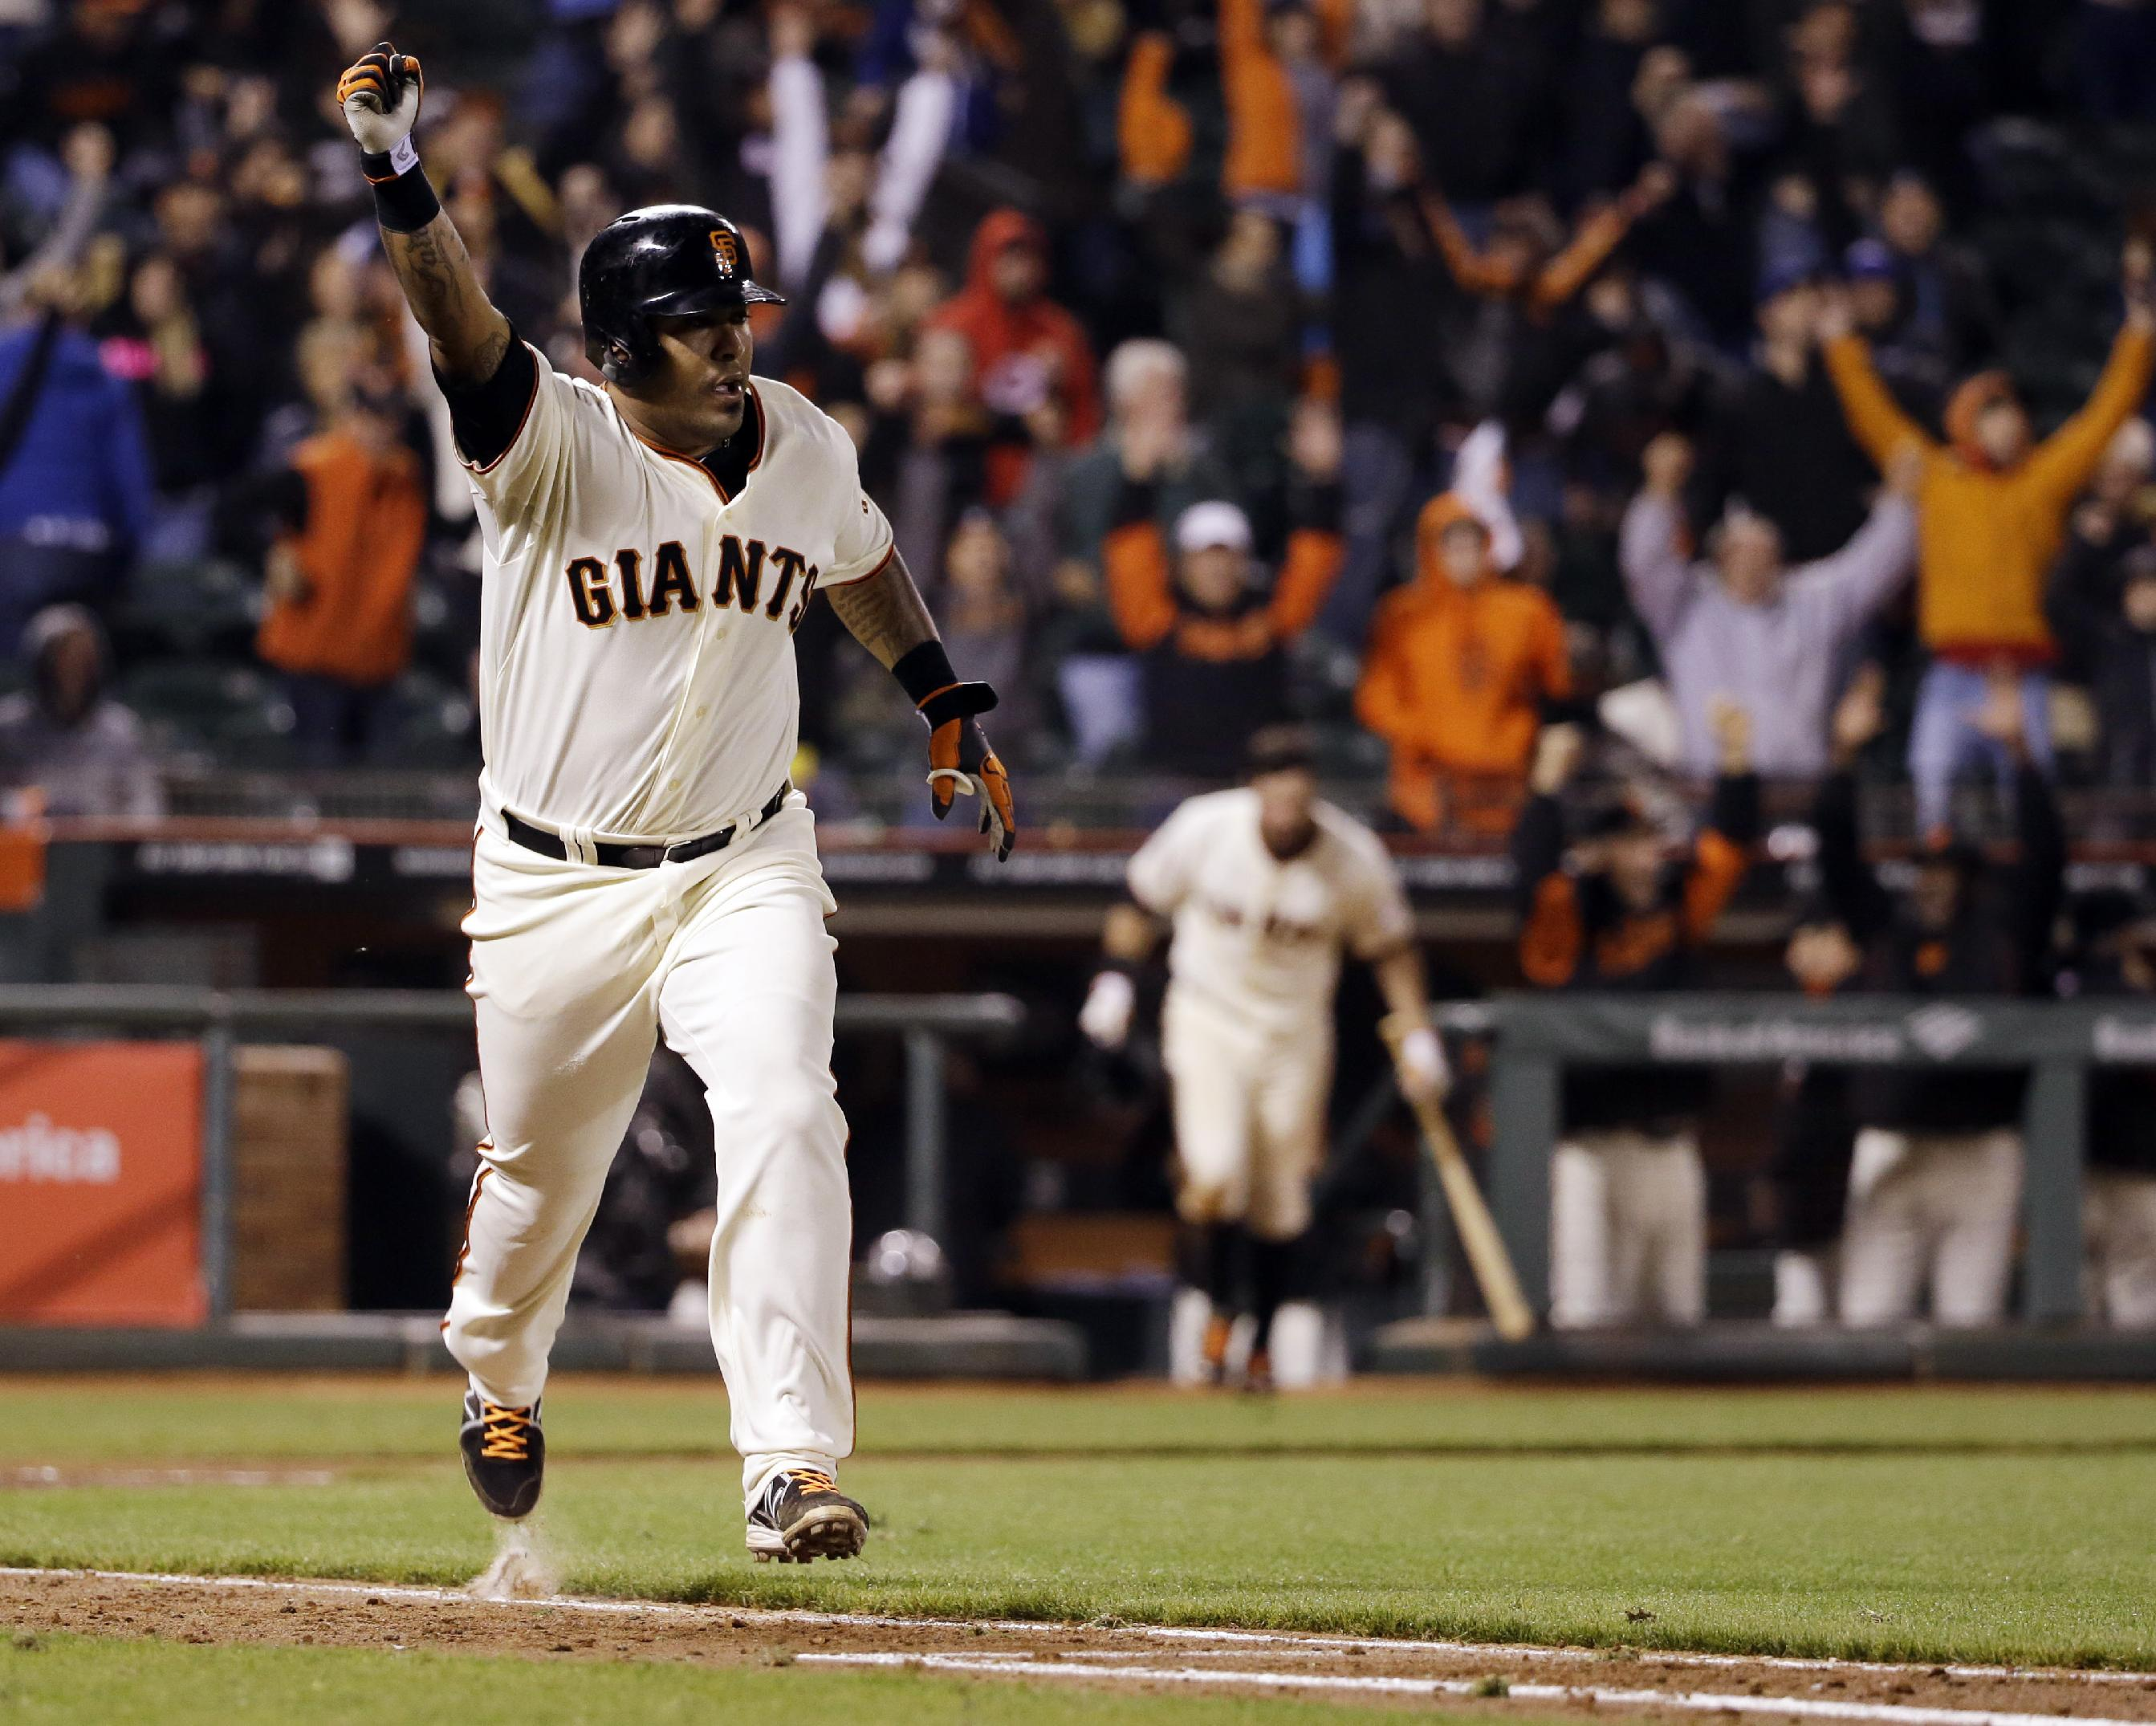 The Grand Slam: Nearly 5 hours later, Hector Sanchez single bea…